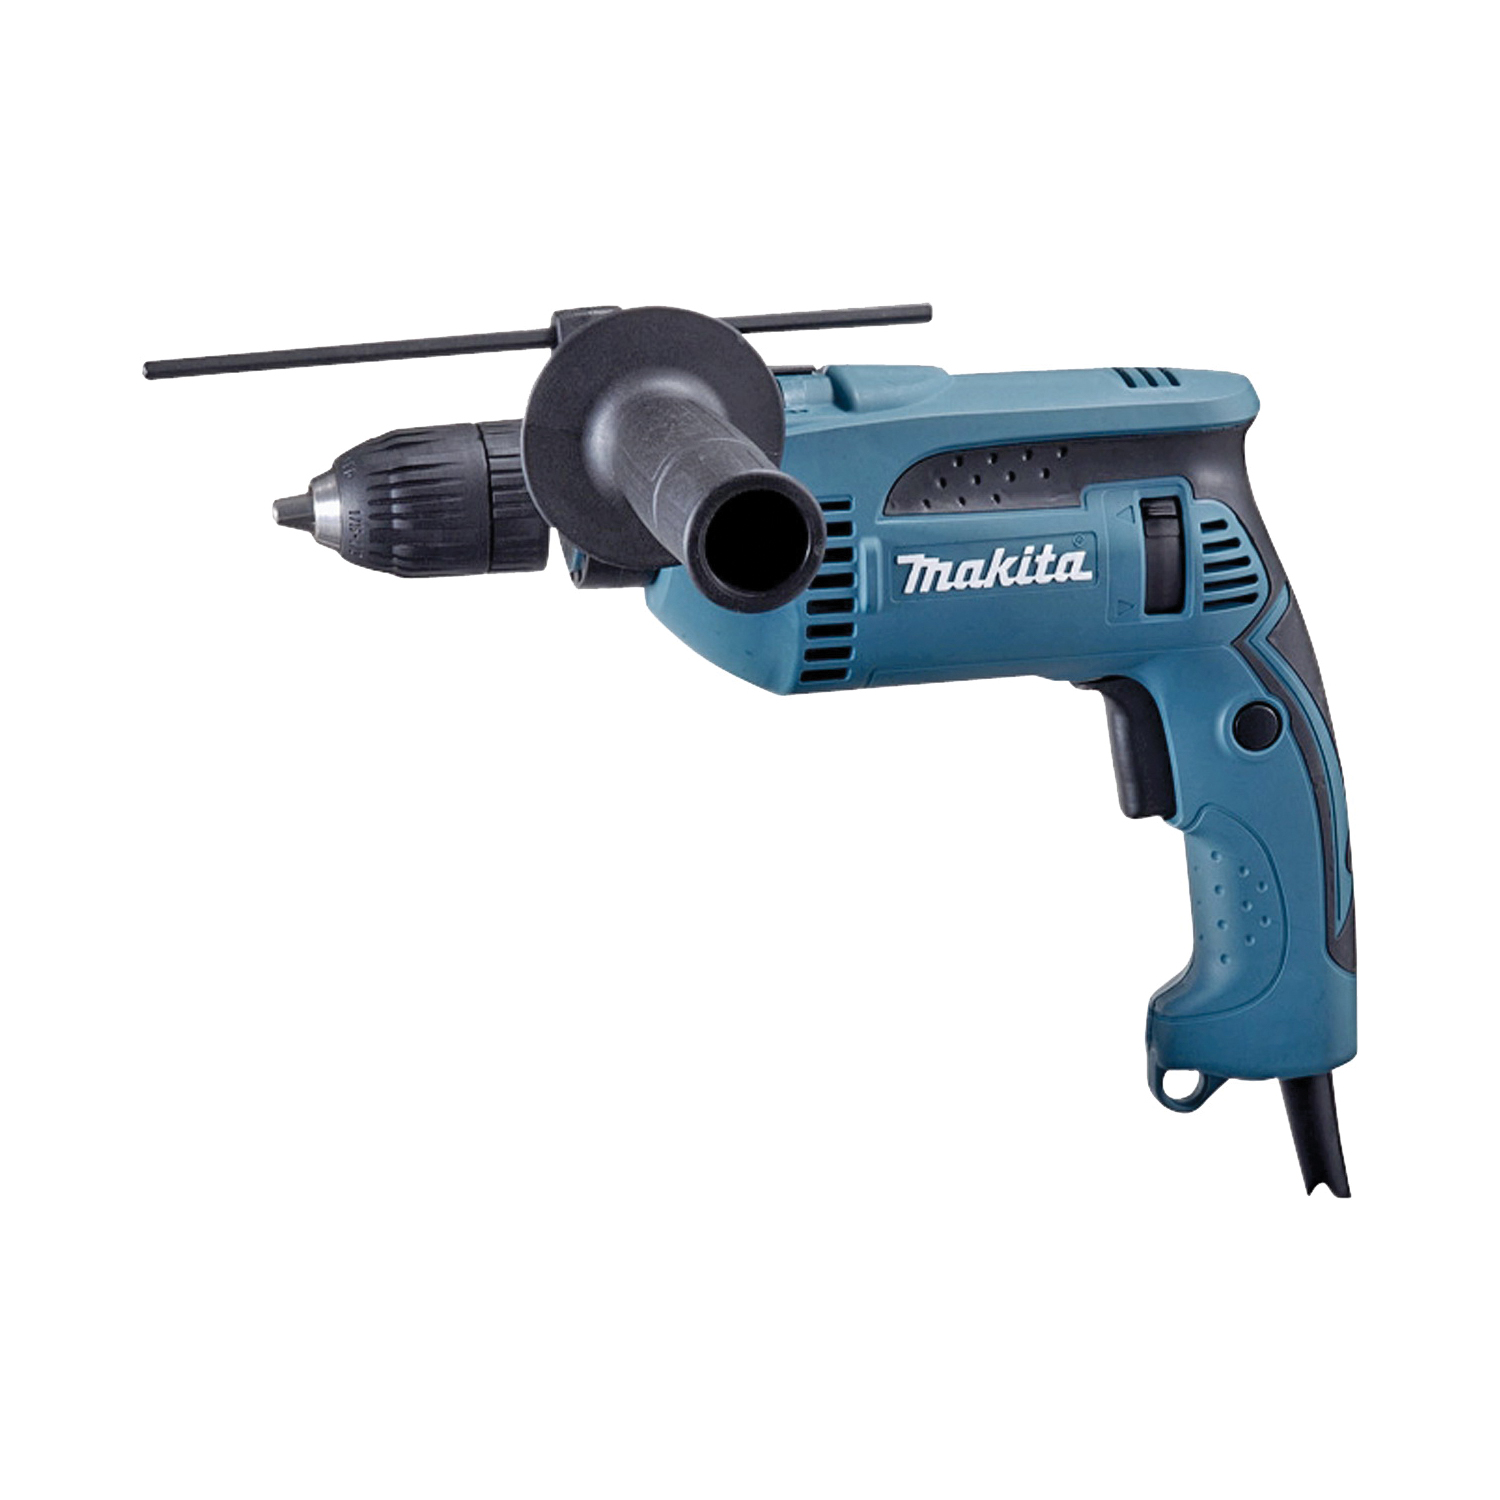 Picture of Makita HP1641K Hammer Drill, 120 V, 6 A, 1/2 in Steel, 1-3/16 in Wood, 5/8 in Concrete Drilling, 1/2 in Chuck